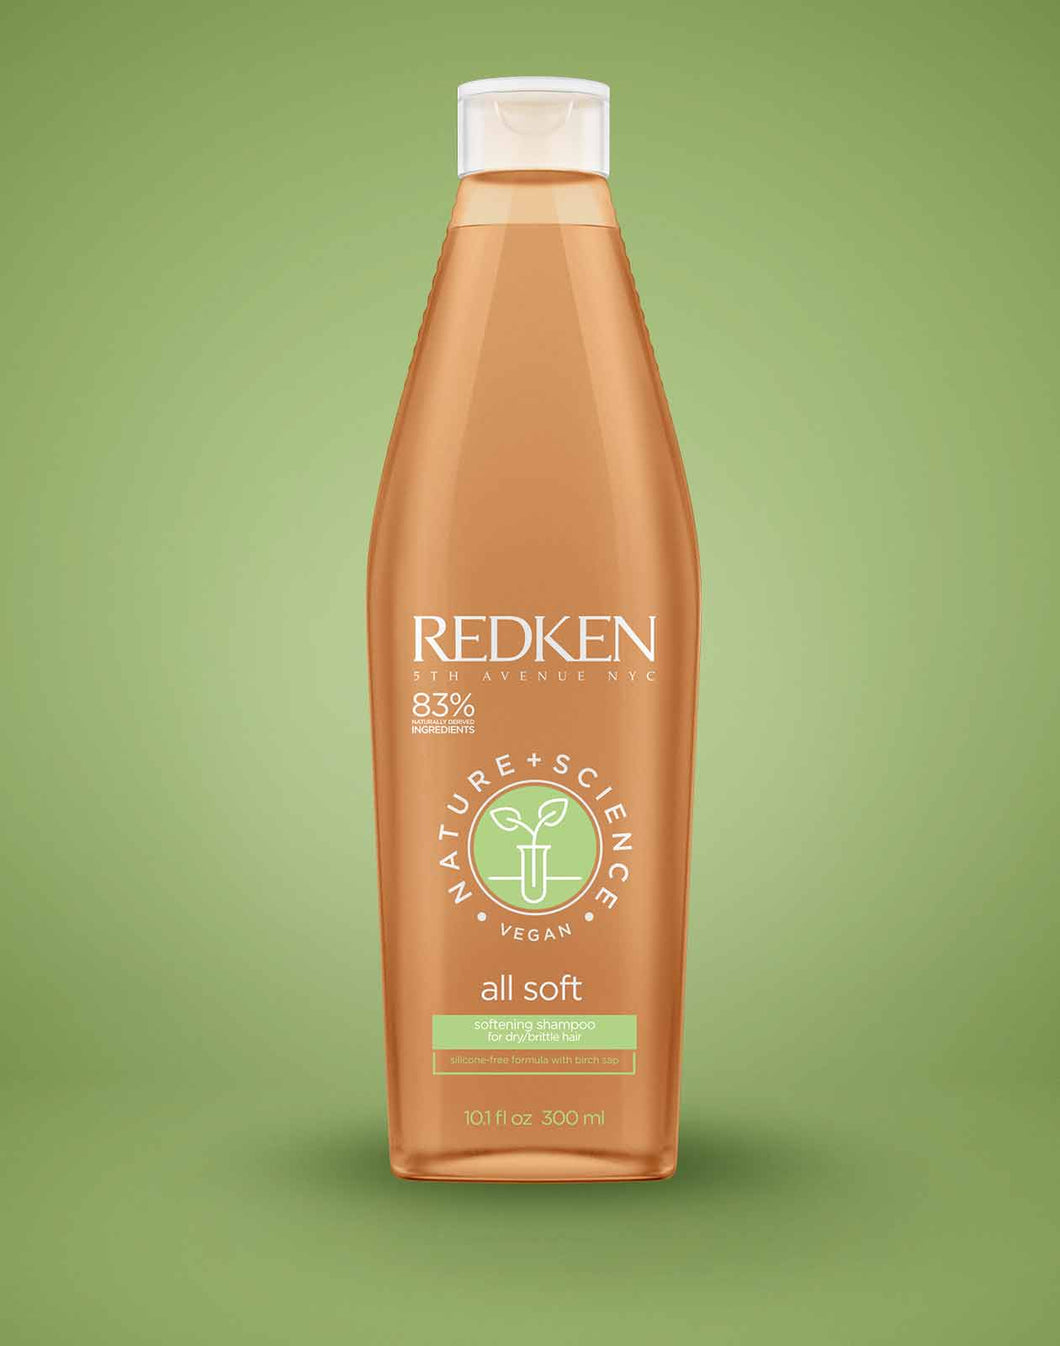 NATURE + SCIENCE ALL SOFT SULFATE-FREE SHAMPOO by Redken - The Color Studio & Salon